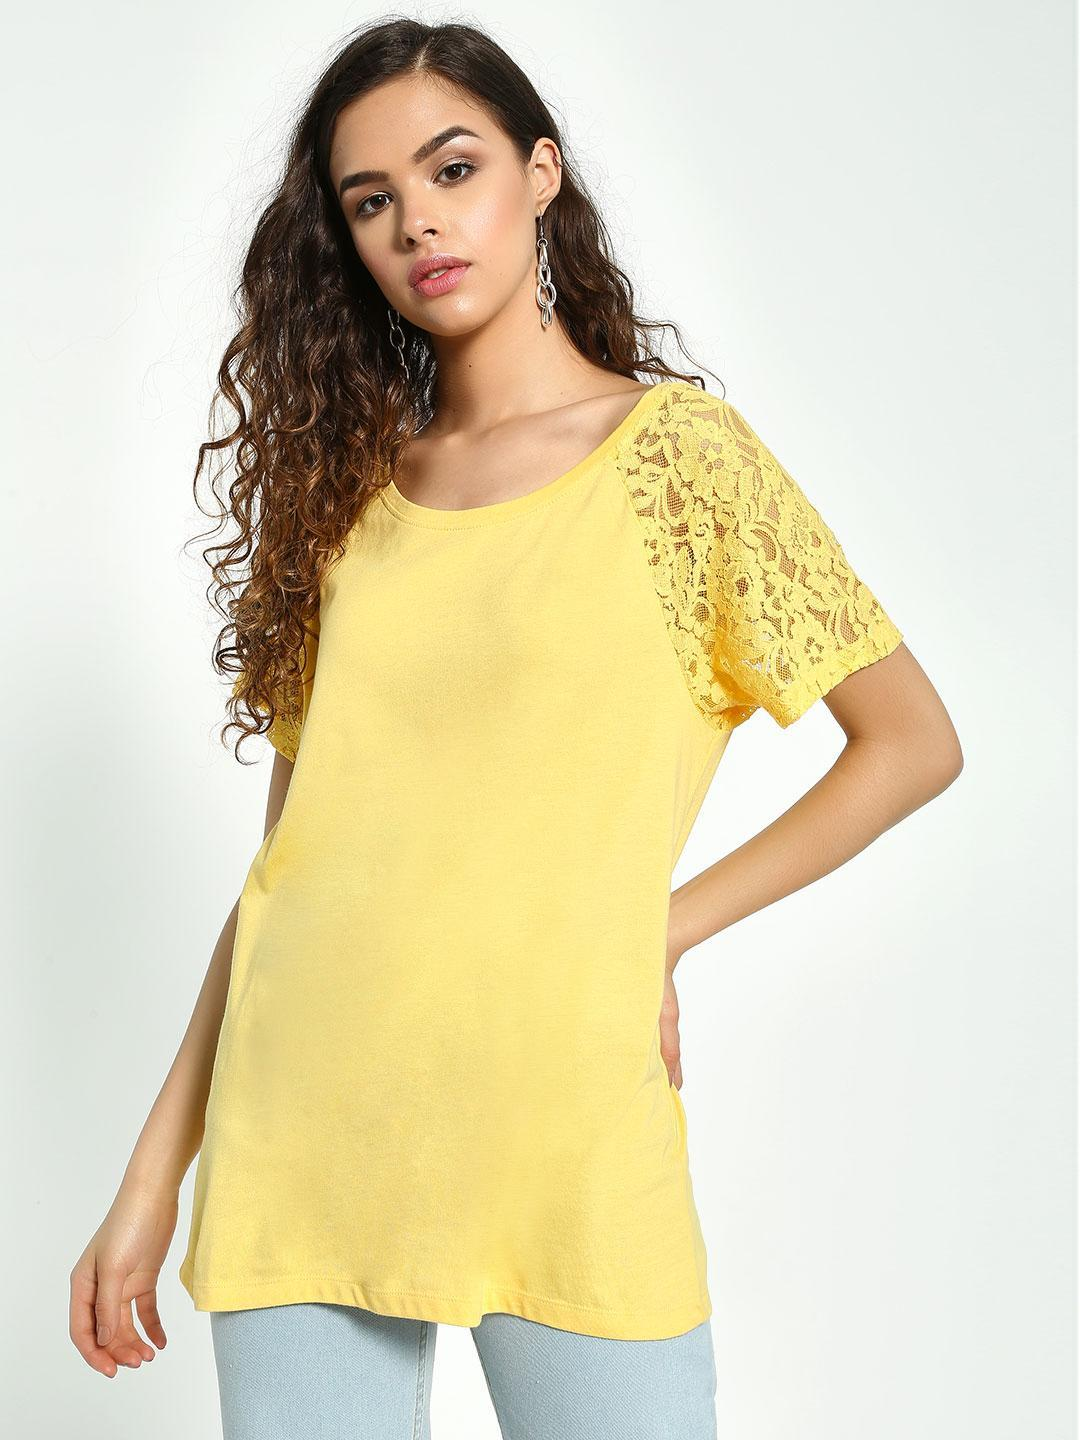 Vero Moda Yellow Floral Lace Short Sleeve T-Shirt 1